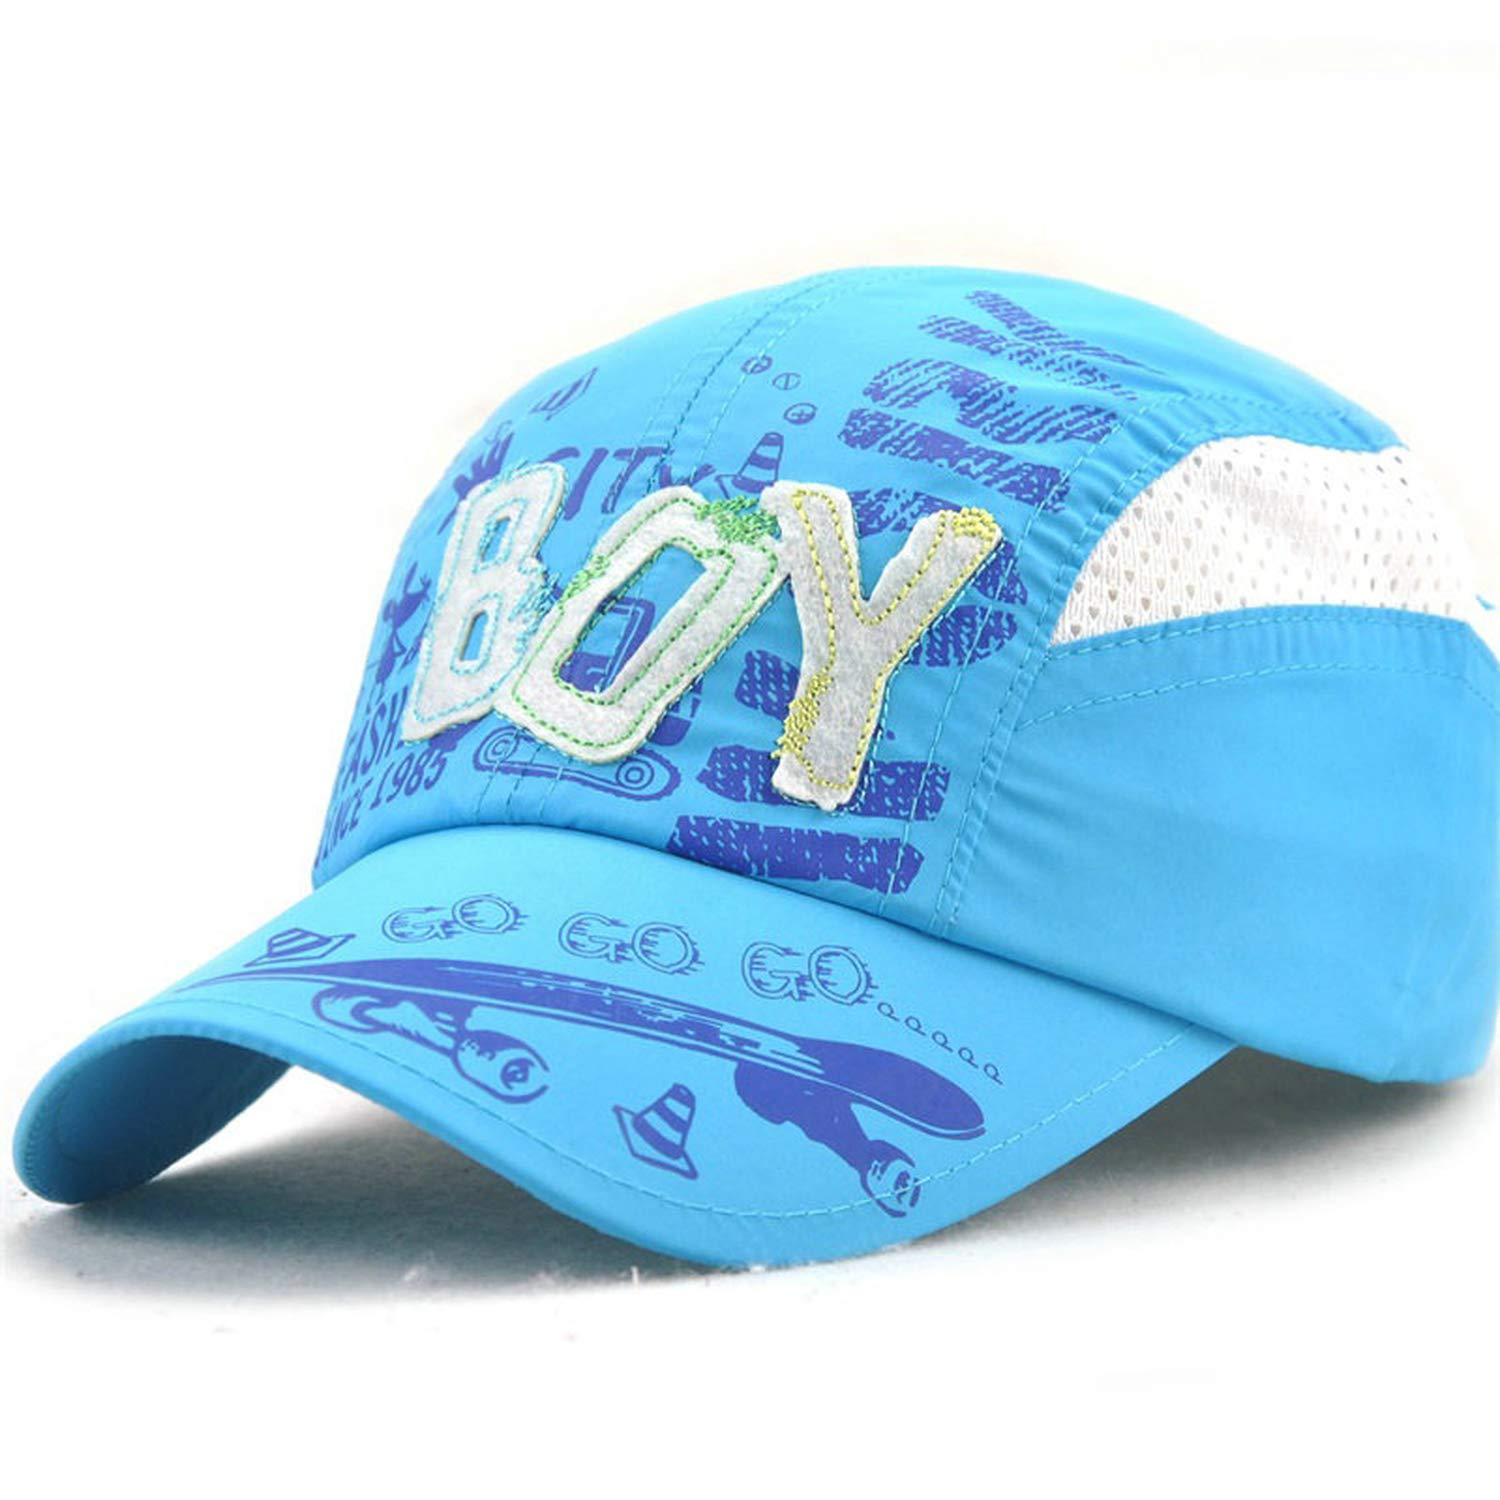 ANDERDM Summer Baseball Caps for Children Quick Drying Hat Child Boys Girls Sports Hats Anti UV Sunscreen Snapback Cap